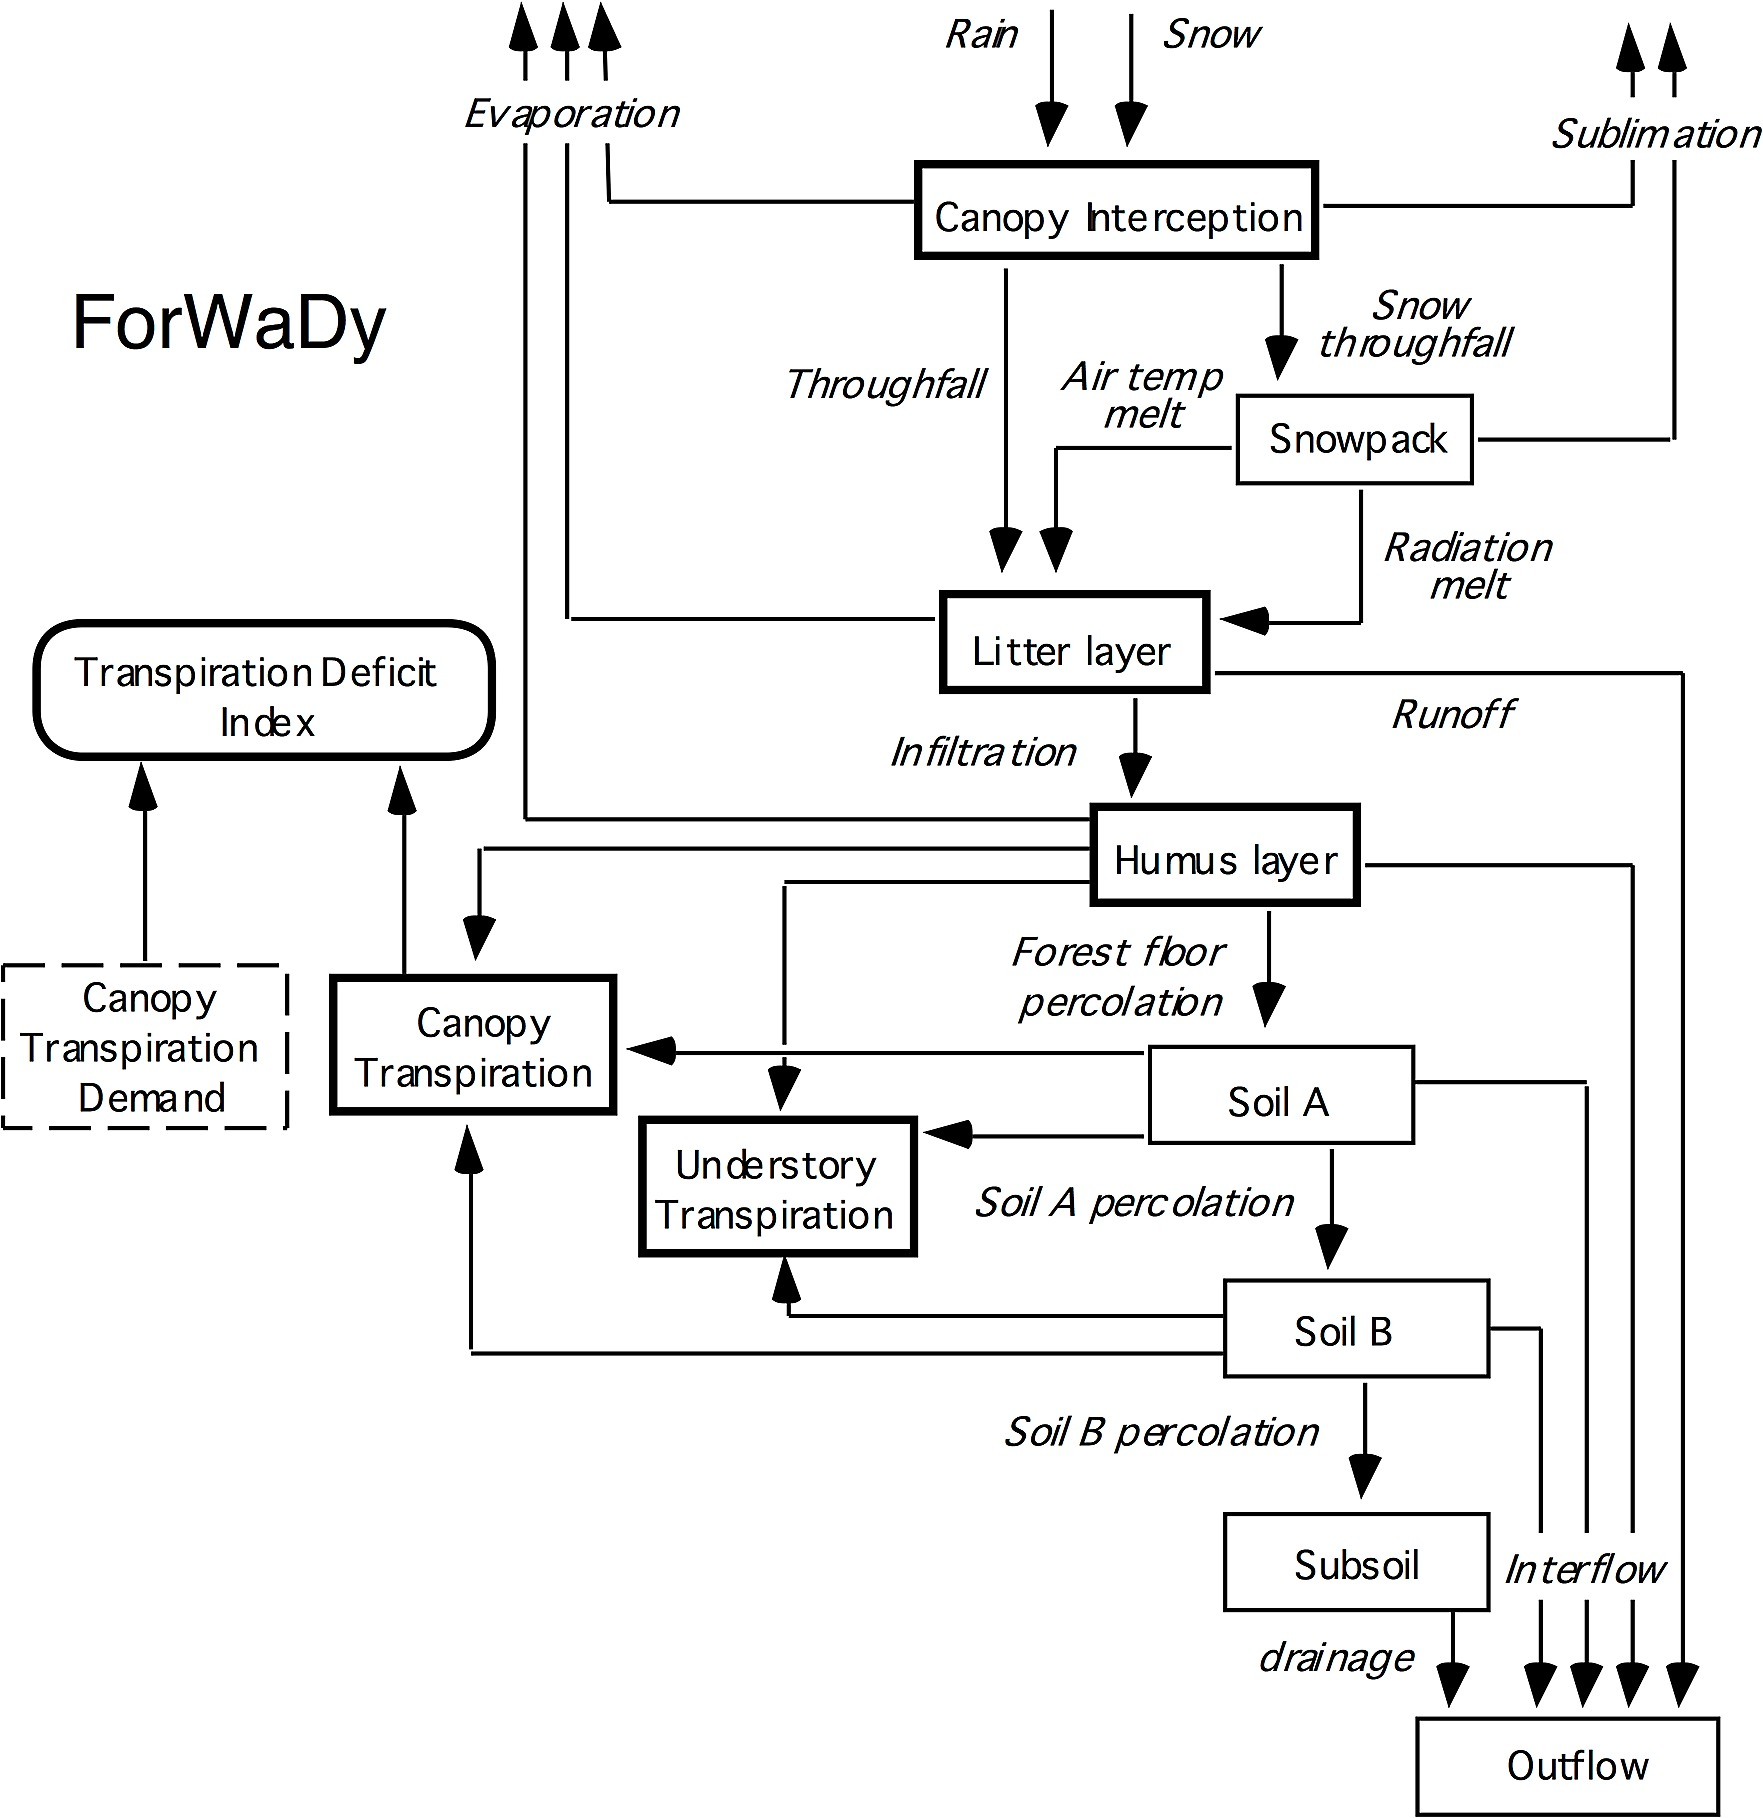 hight resolution of schematic diagram of the forwady model indicating water flow pathways and storage compartments